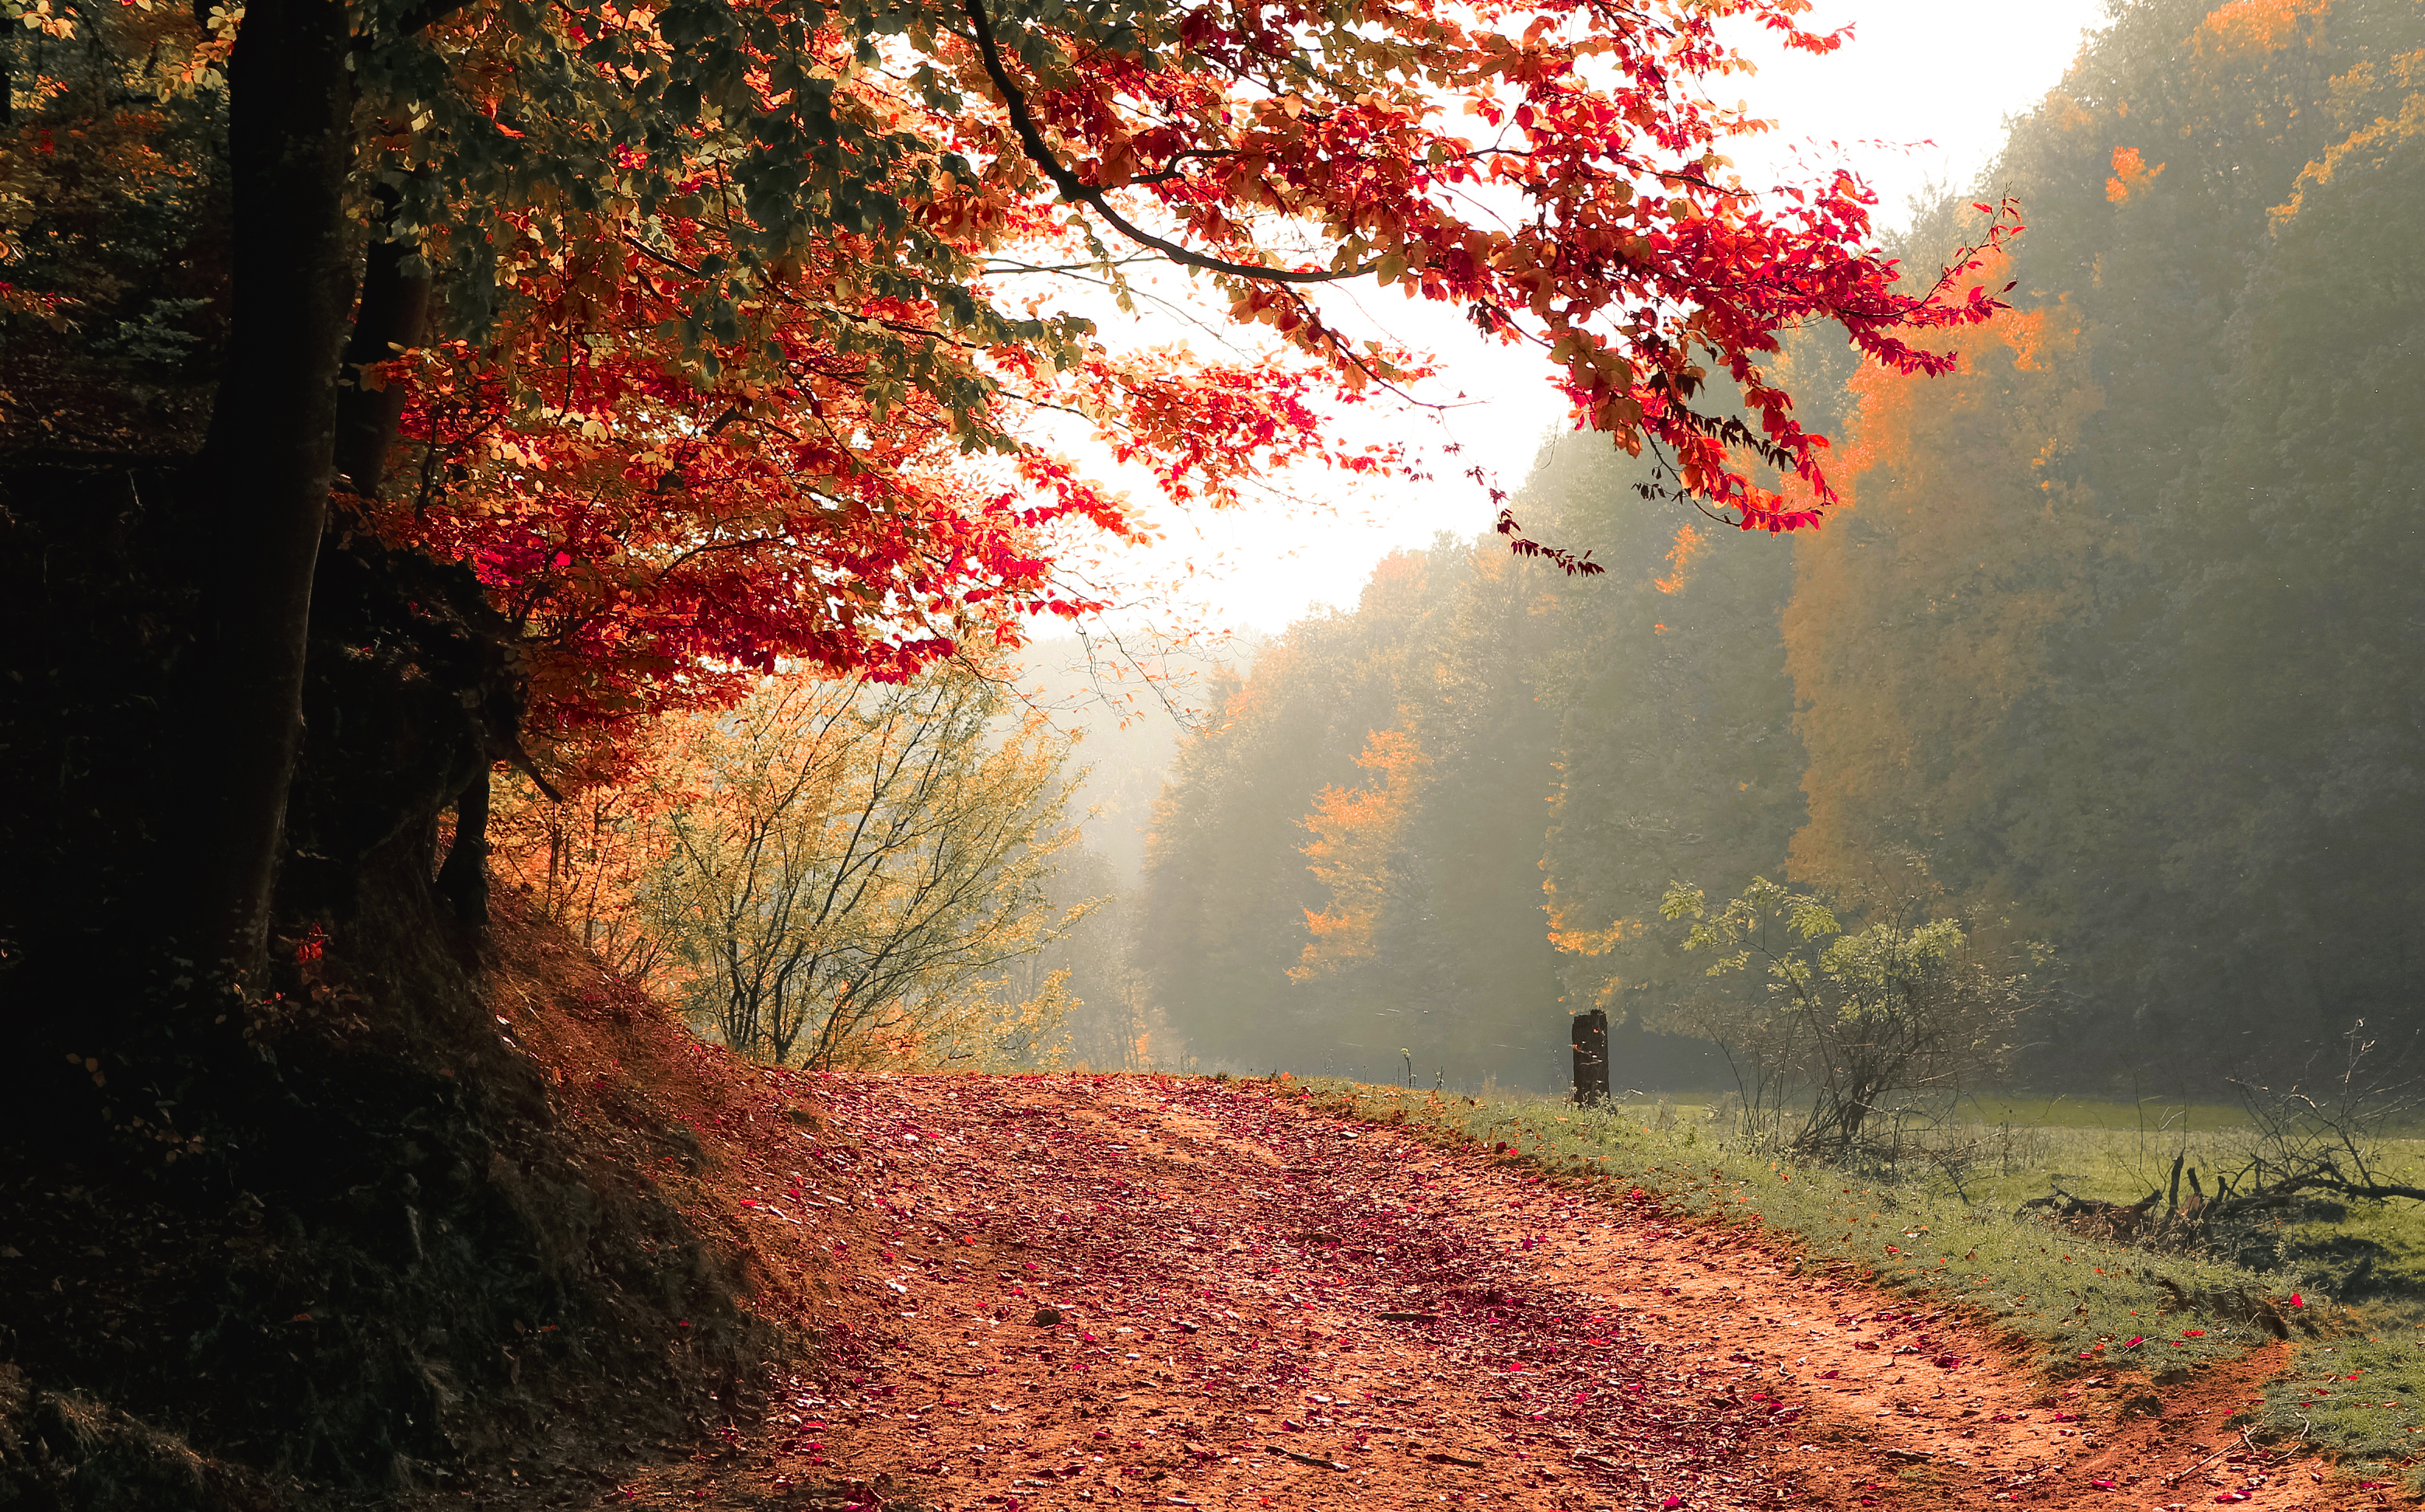 Desktop Wallpaper Fall Images Free Stock Photo Of Autumn Daylight Fall